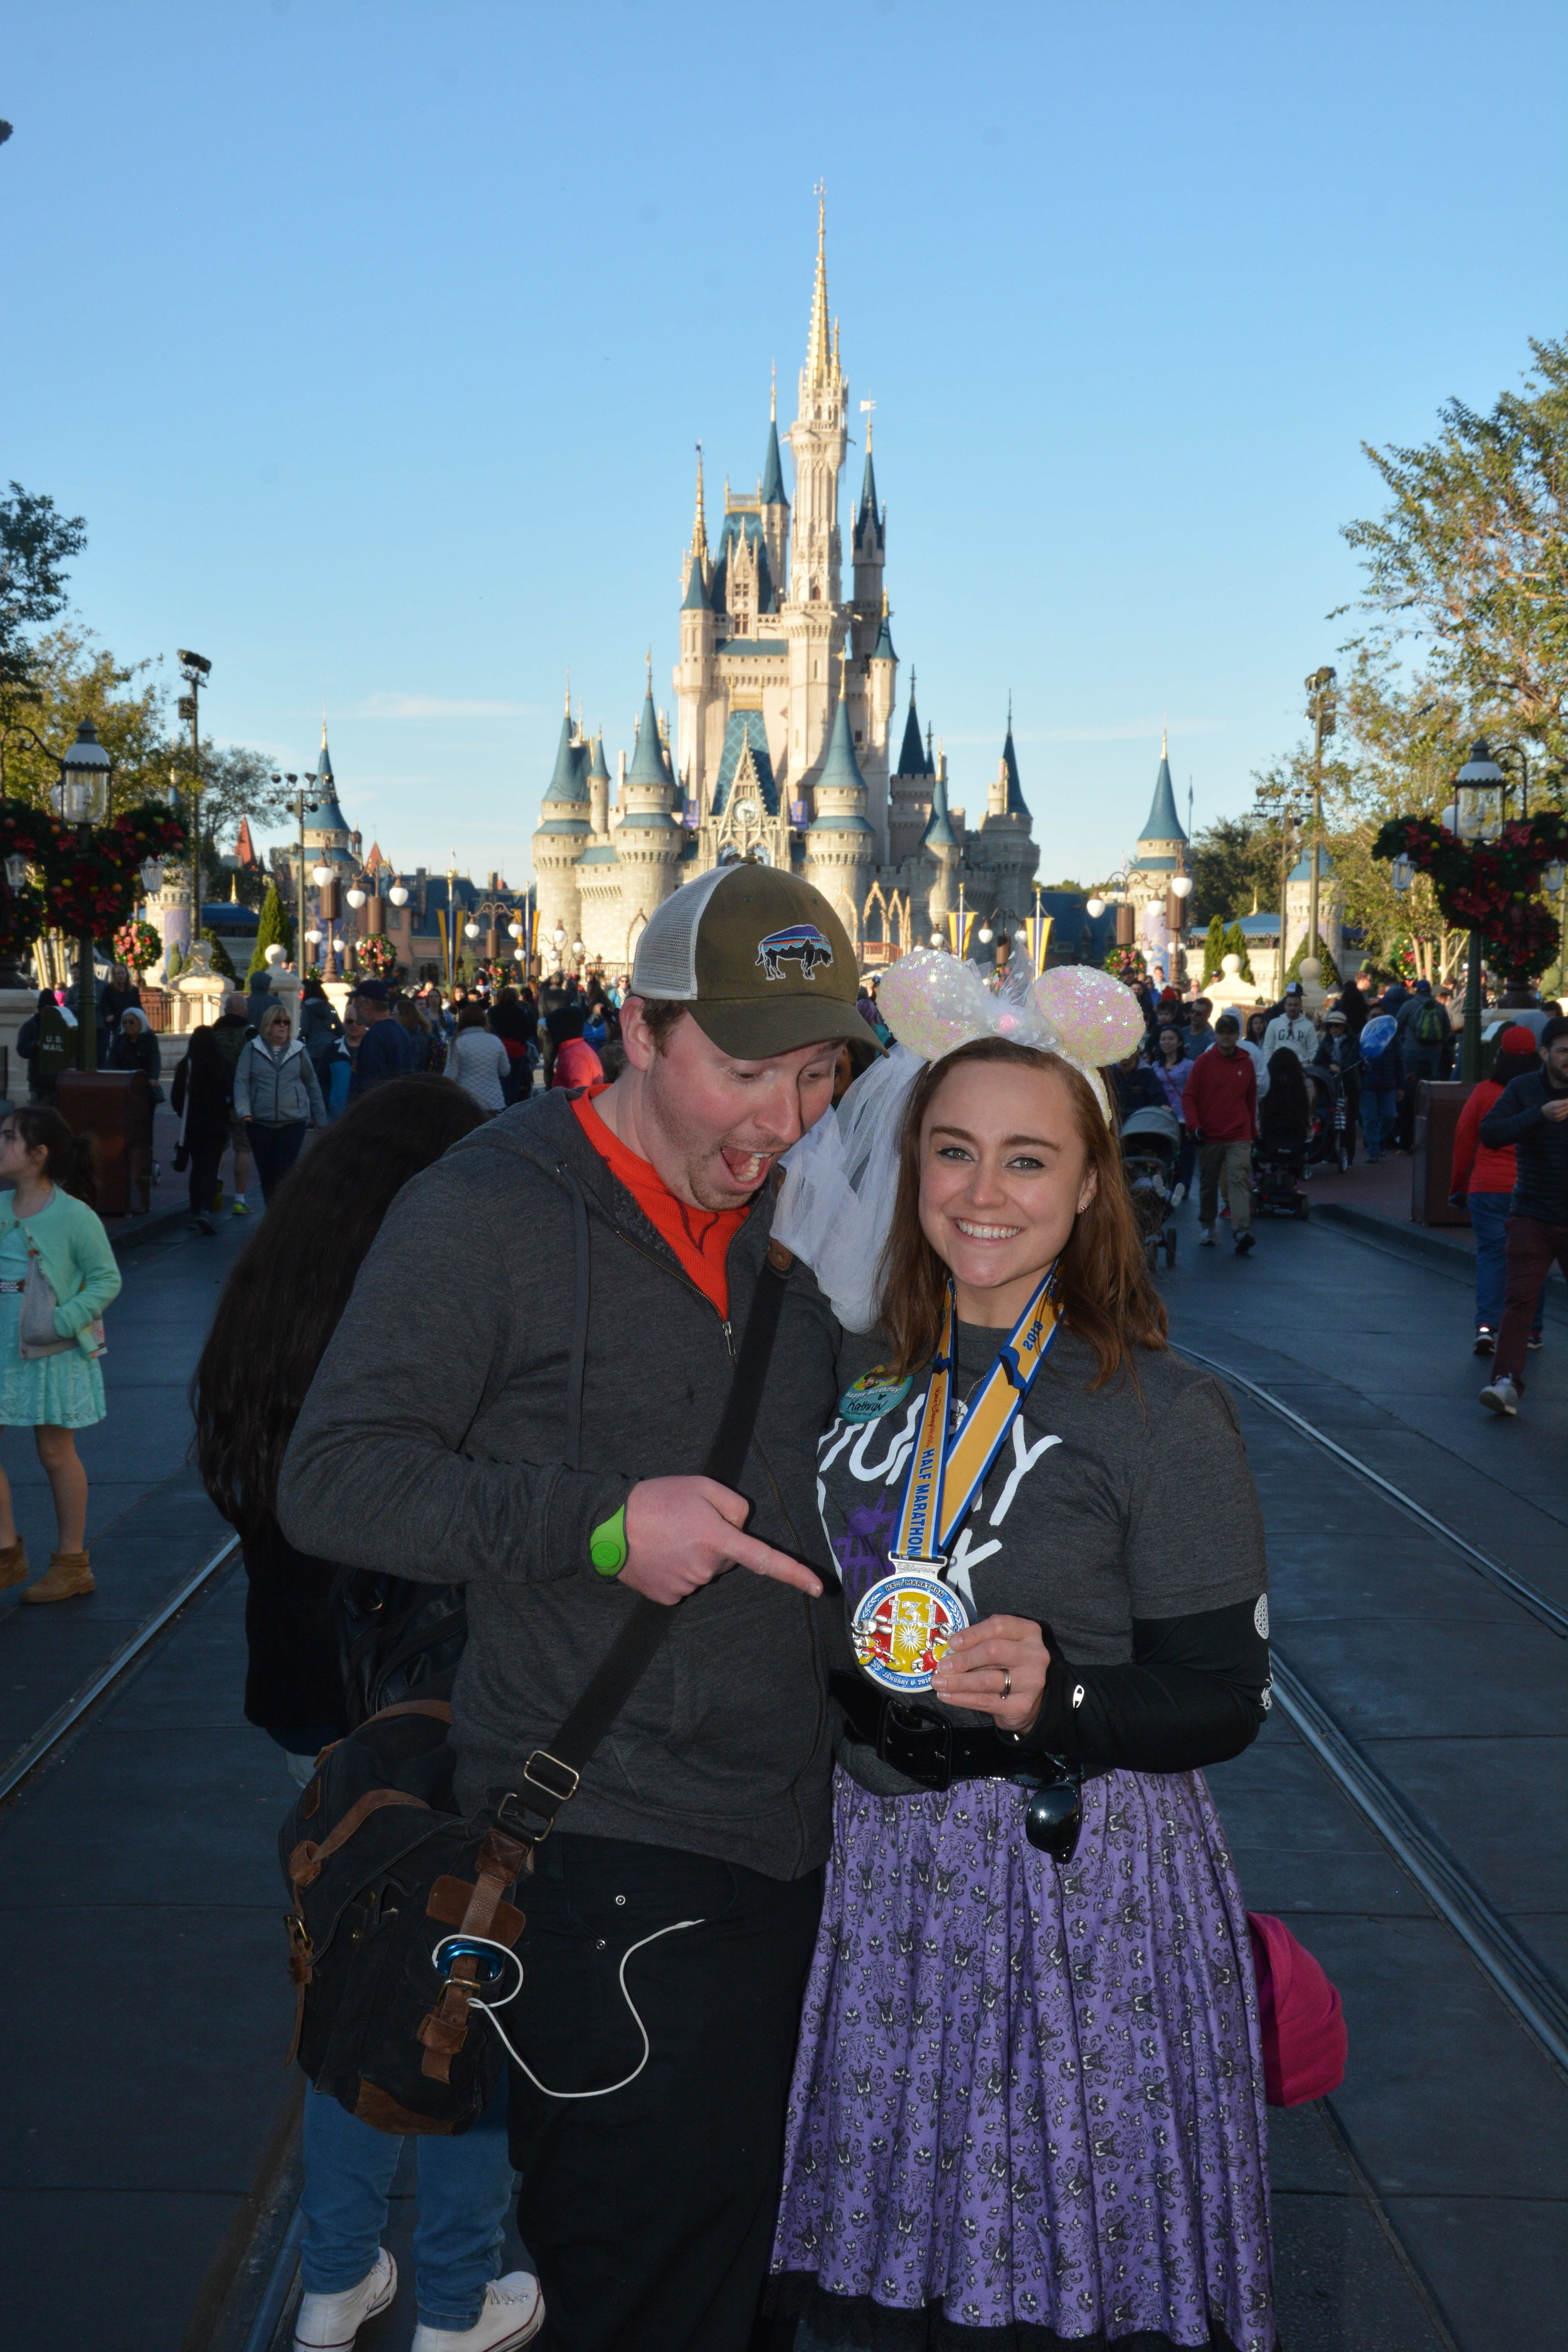 A huge thanks to this guy who went to Disney for over a week just to celebrate me and cheer me on ❤️